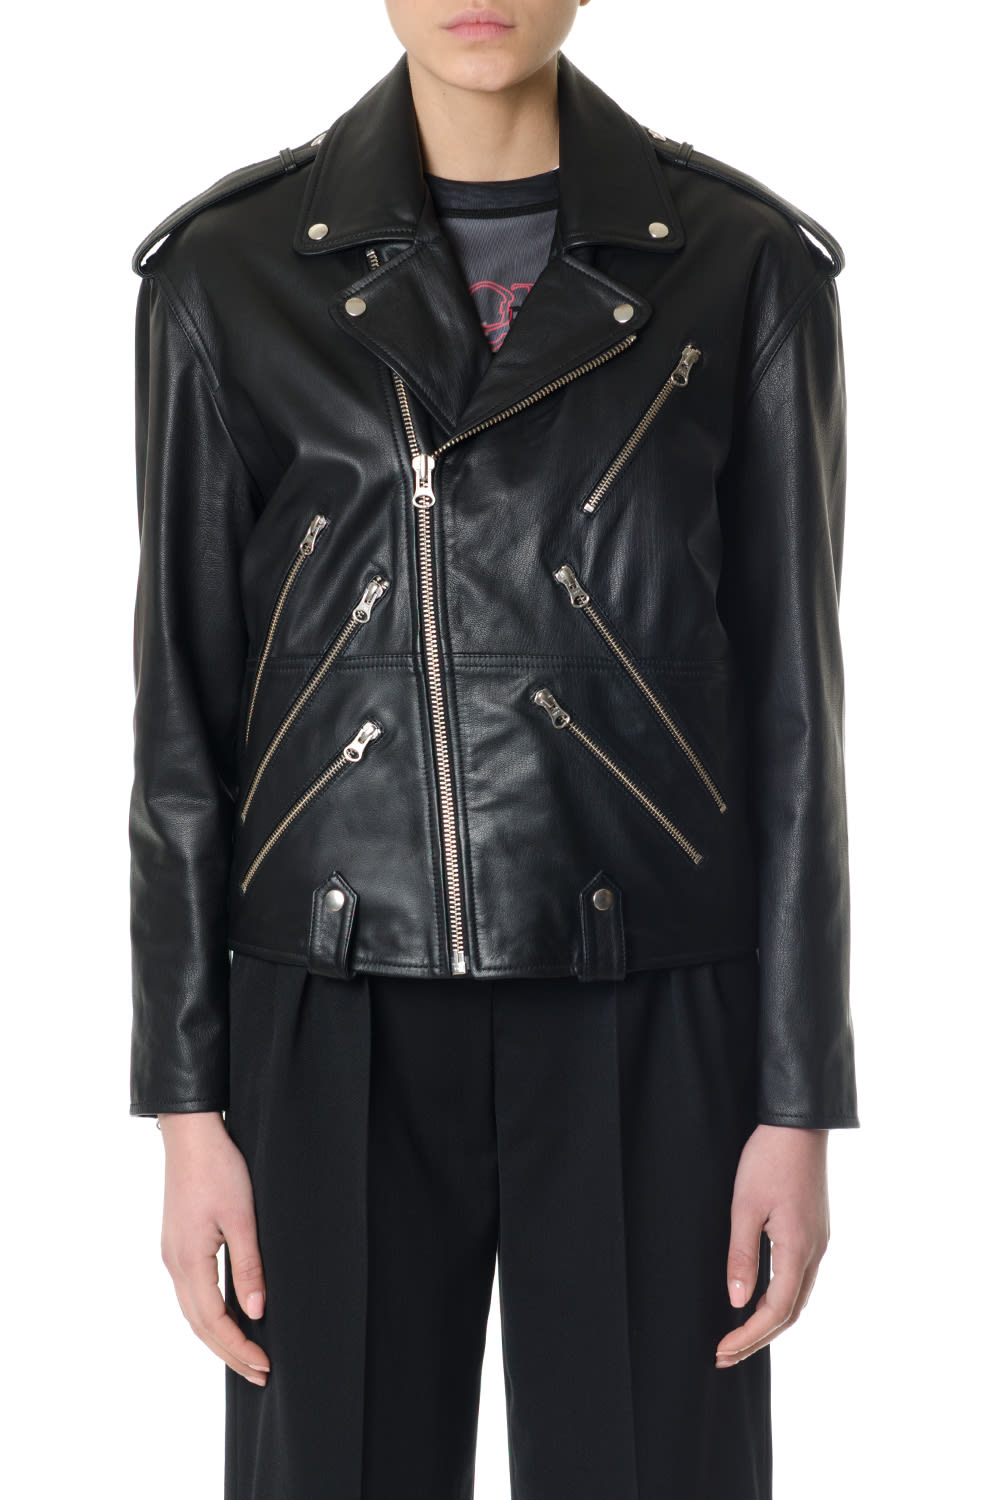 McQ Alexander McQueen Zipped Black Leather Biker Jacket